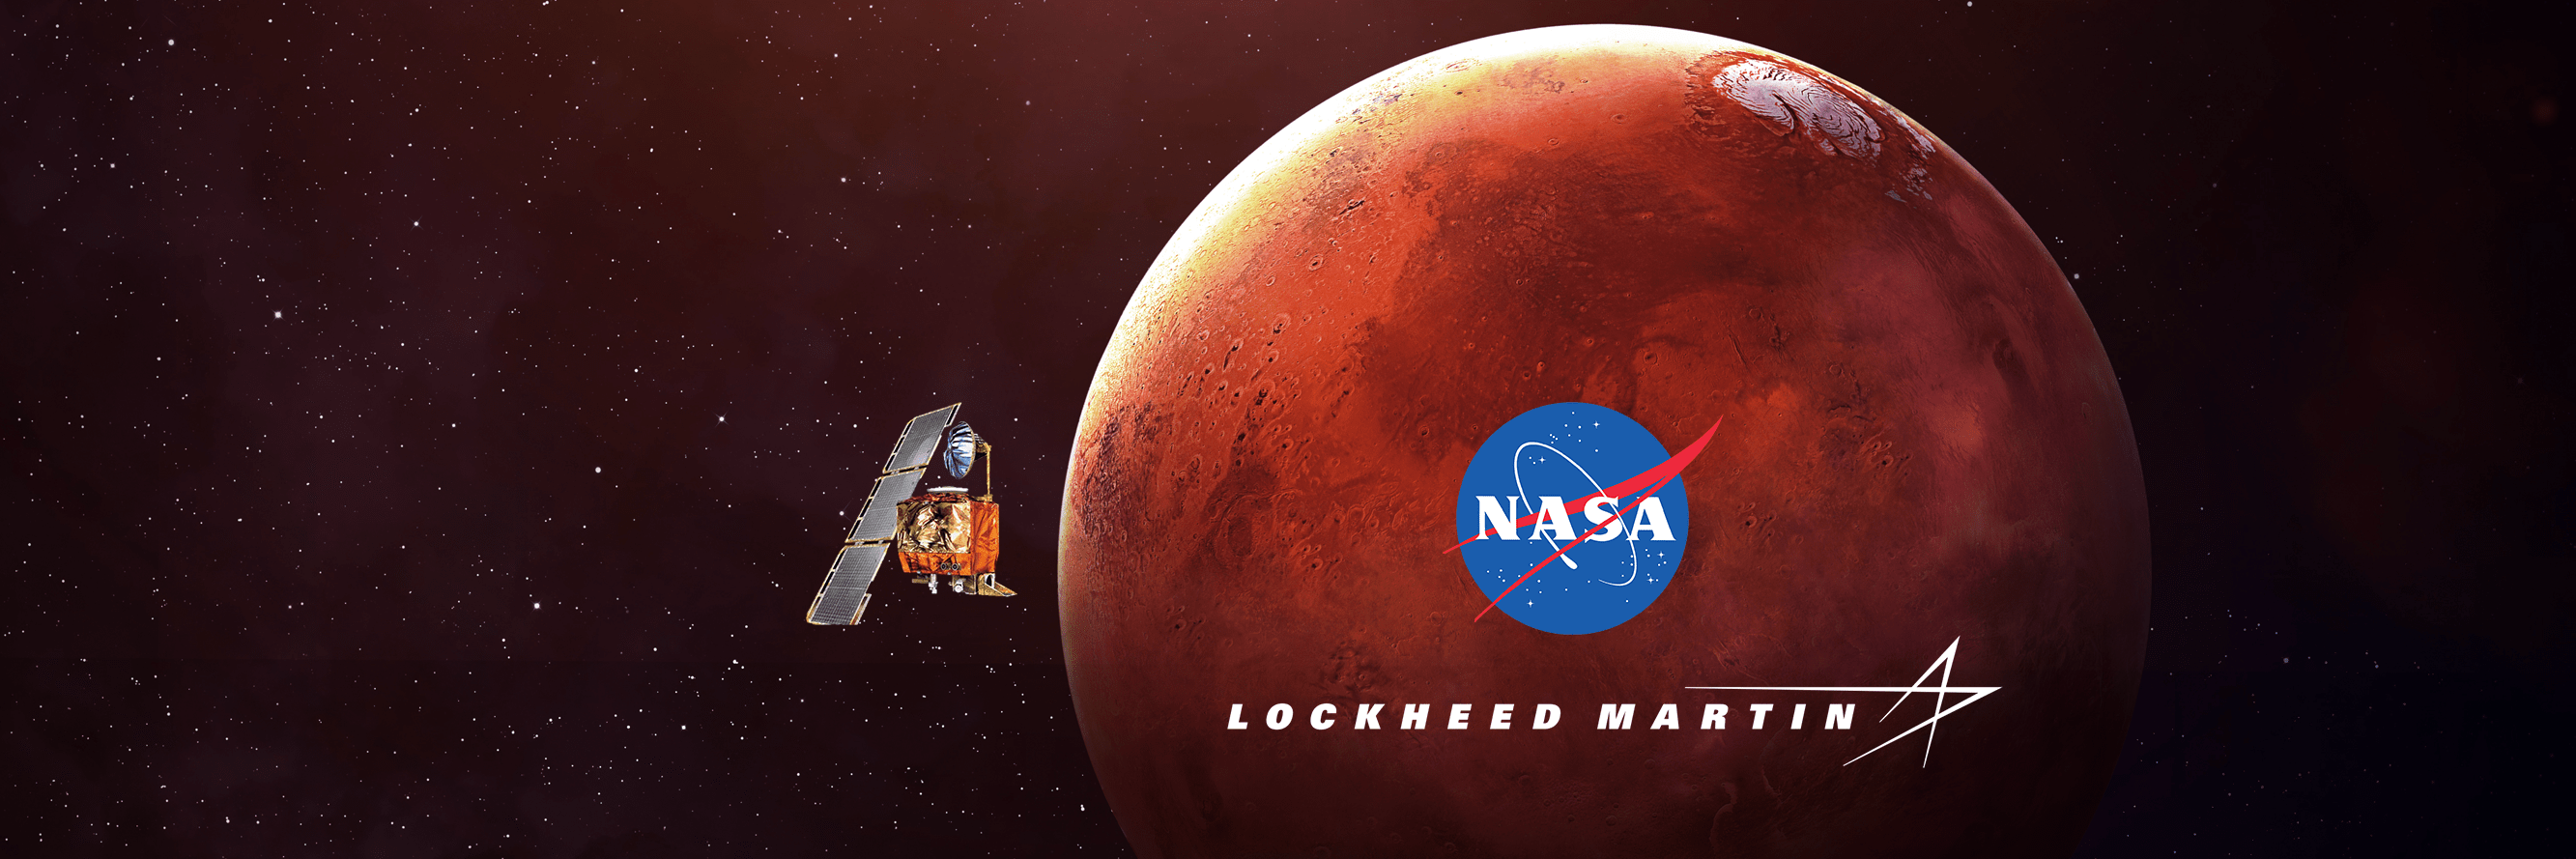 Analyzing Software Failure on the NASA Mars Climate Orbiter